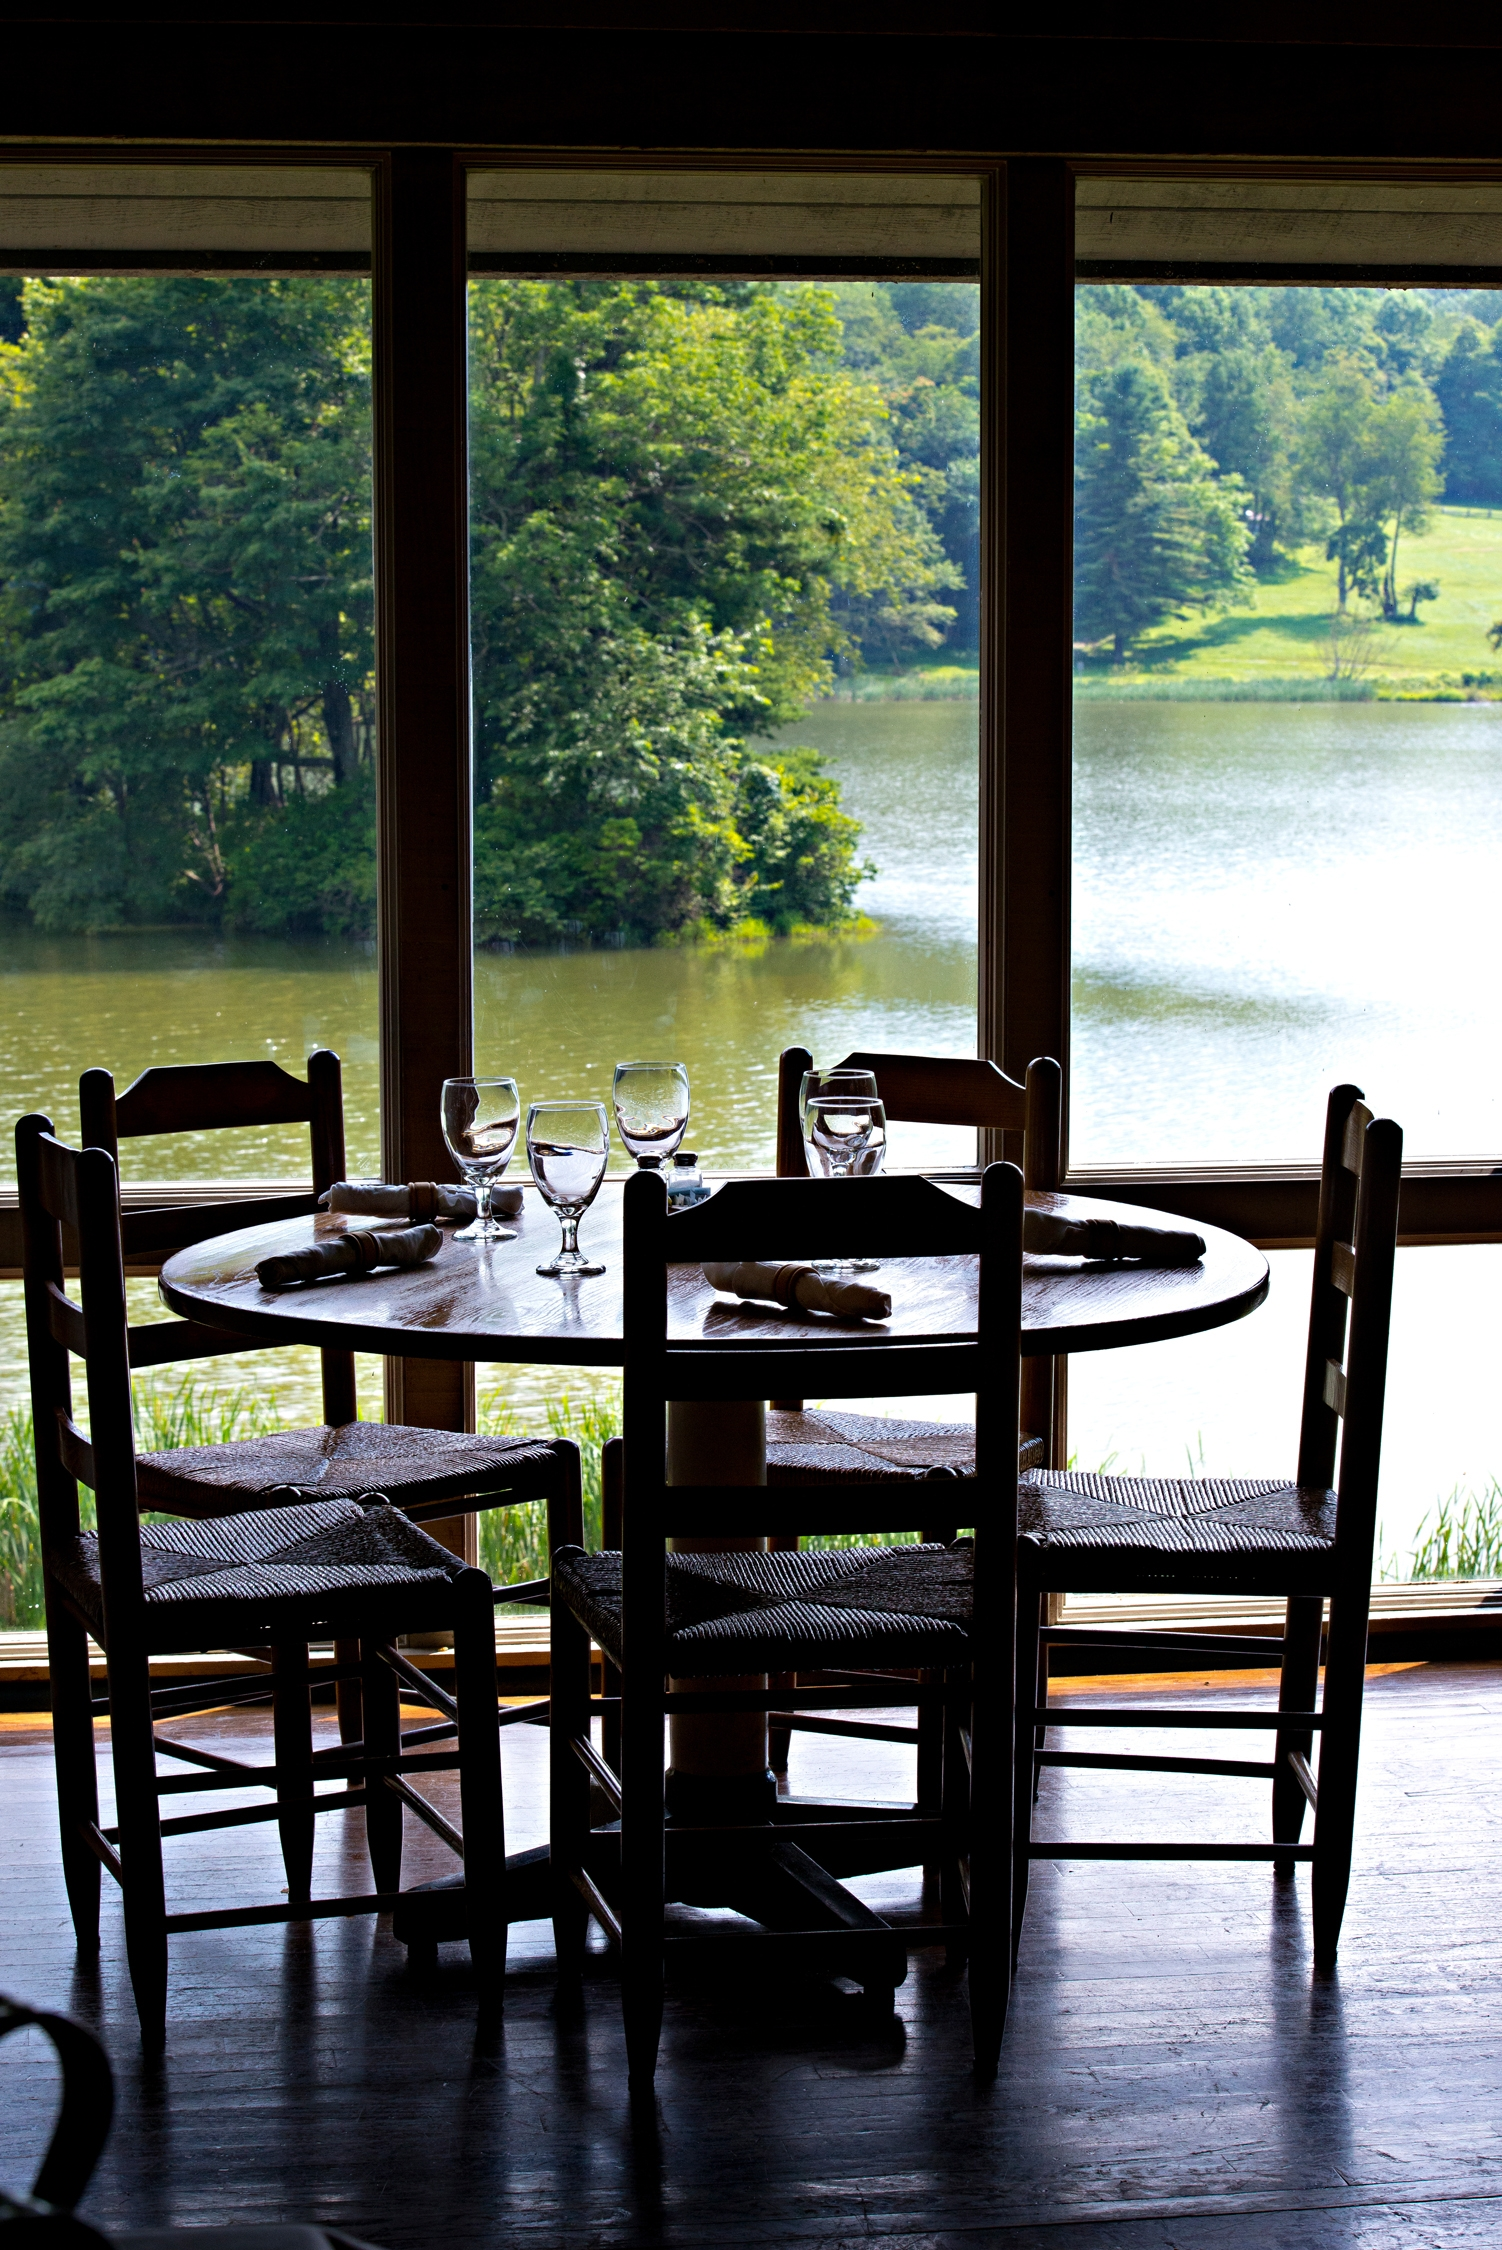 Peaks of Otter Lodge Restaurant with seating overlooking Abbott Lake